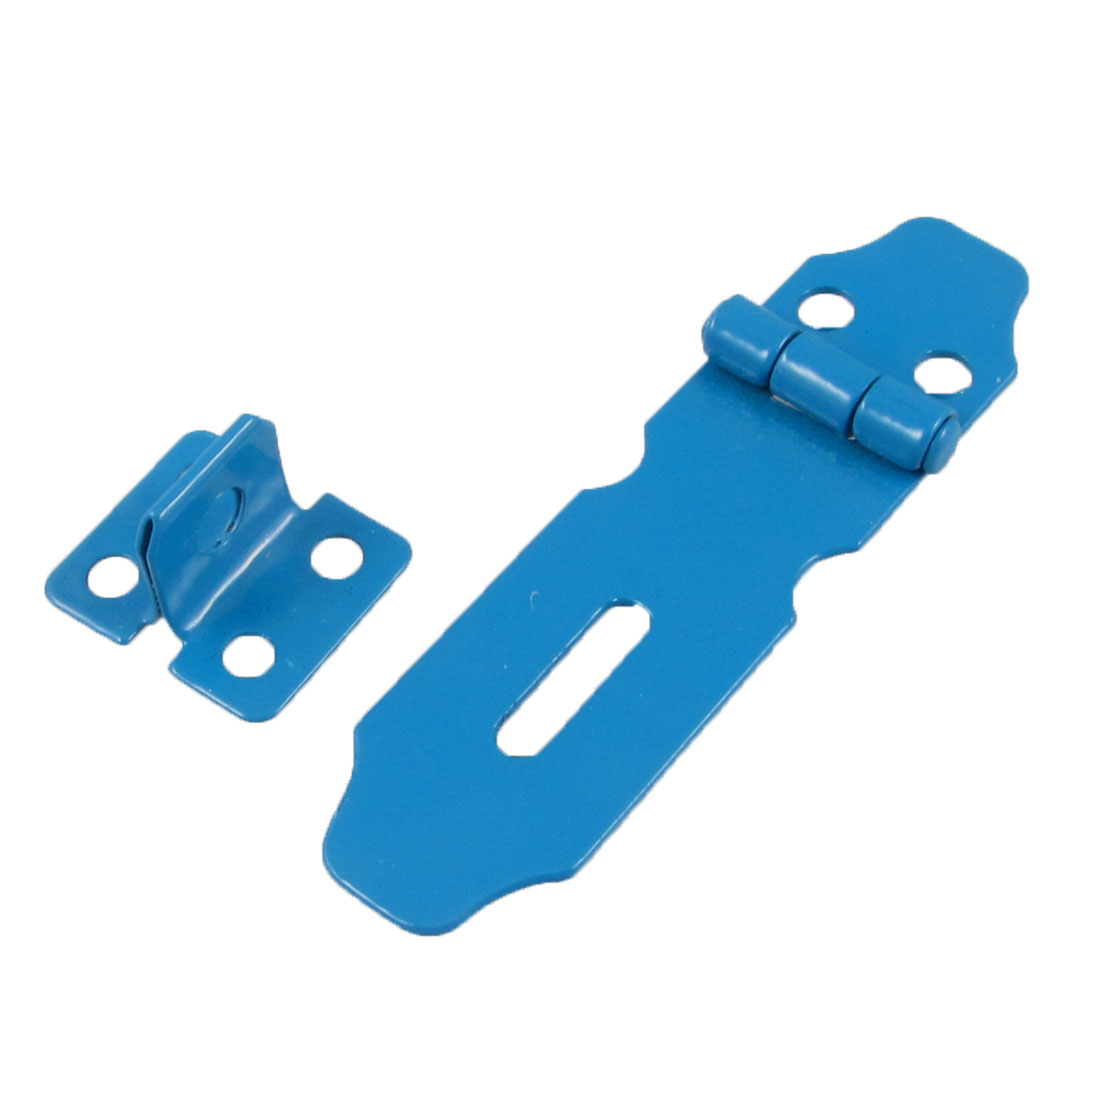 "Blue Metal Staple 3"" Hasp Set for Cupboard Cabinet Gate Doors"